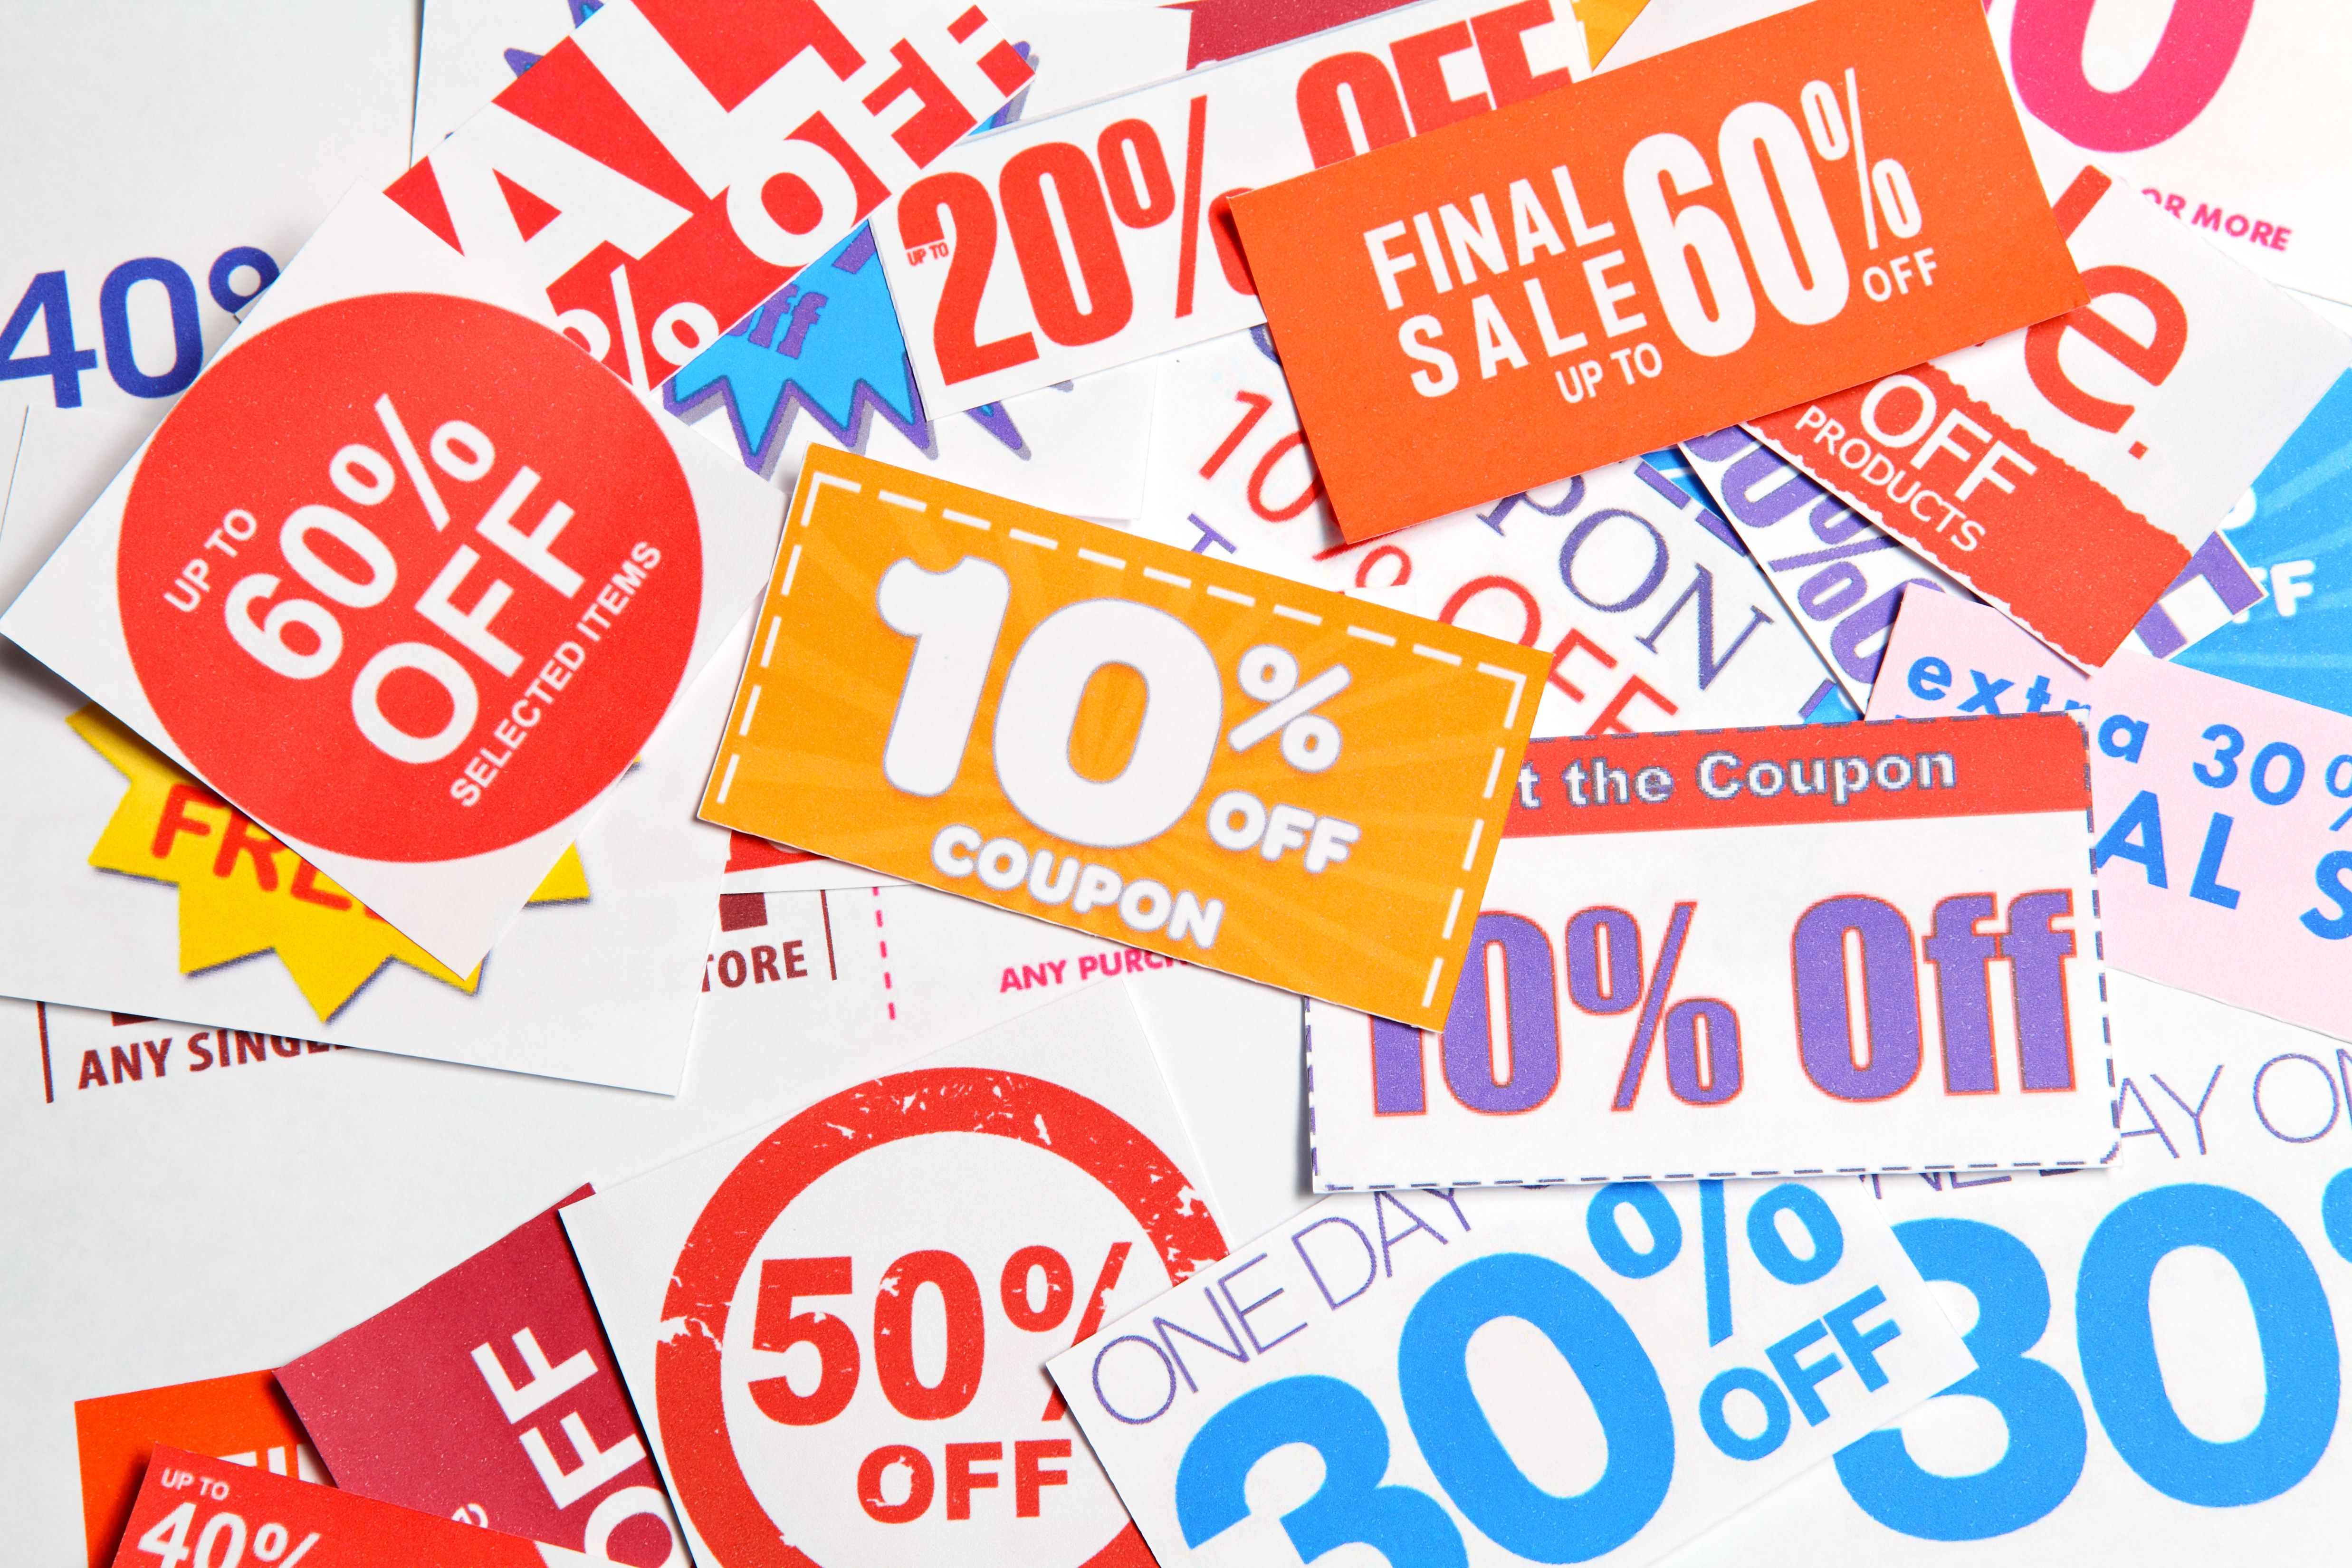 Printable online coupons, Promo codes